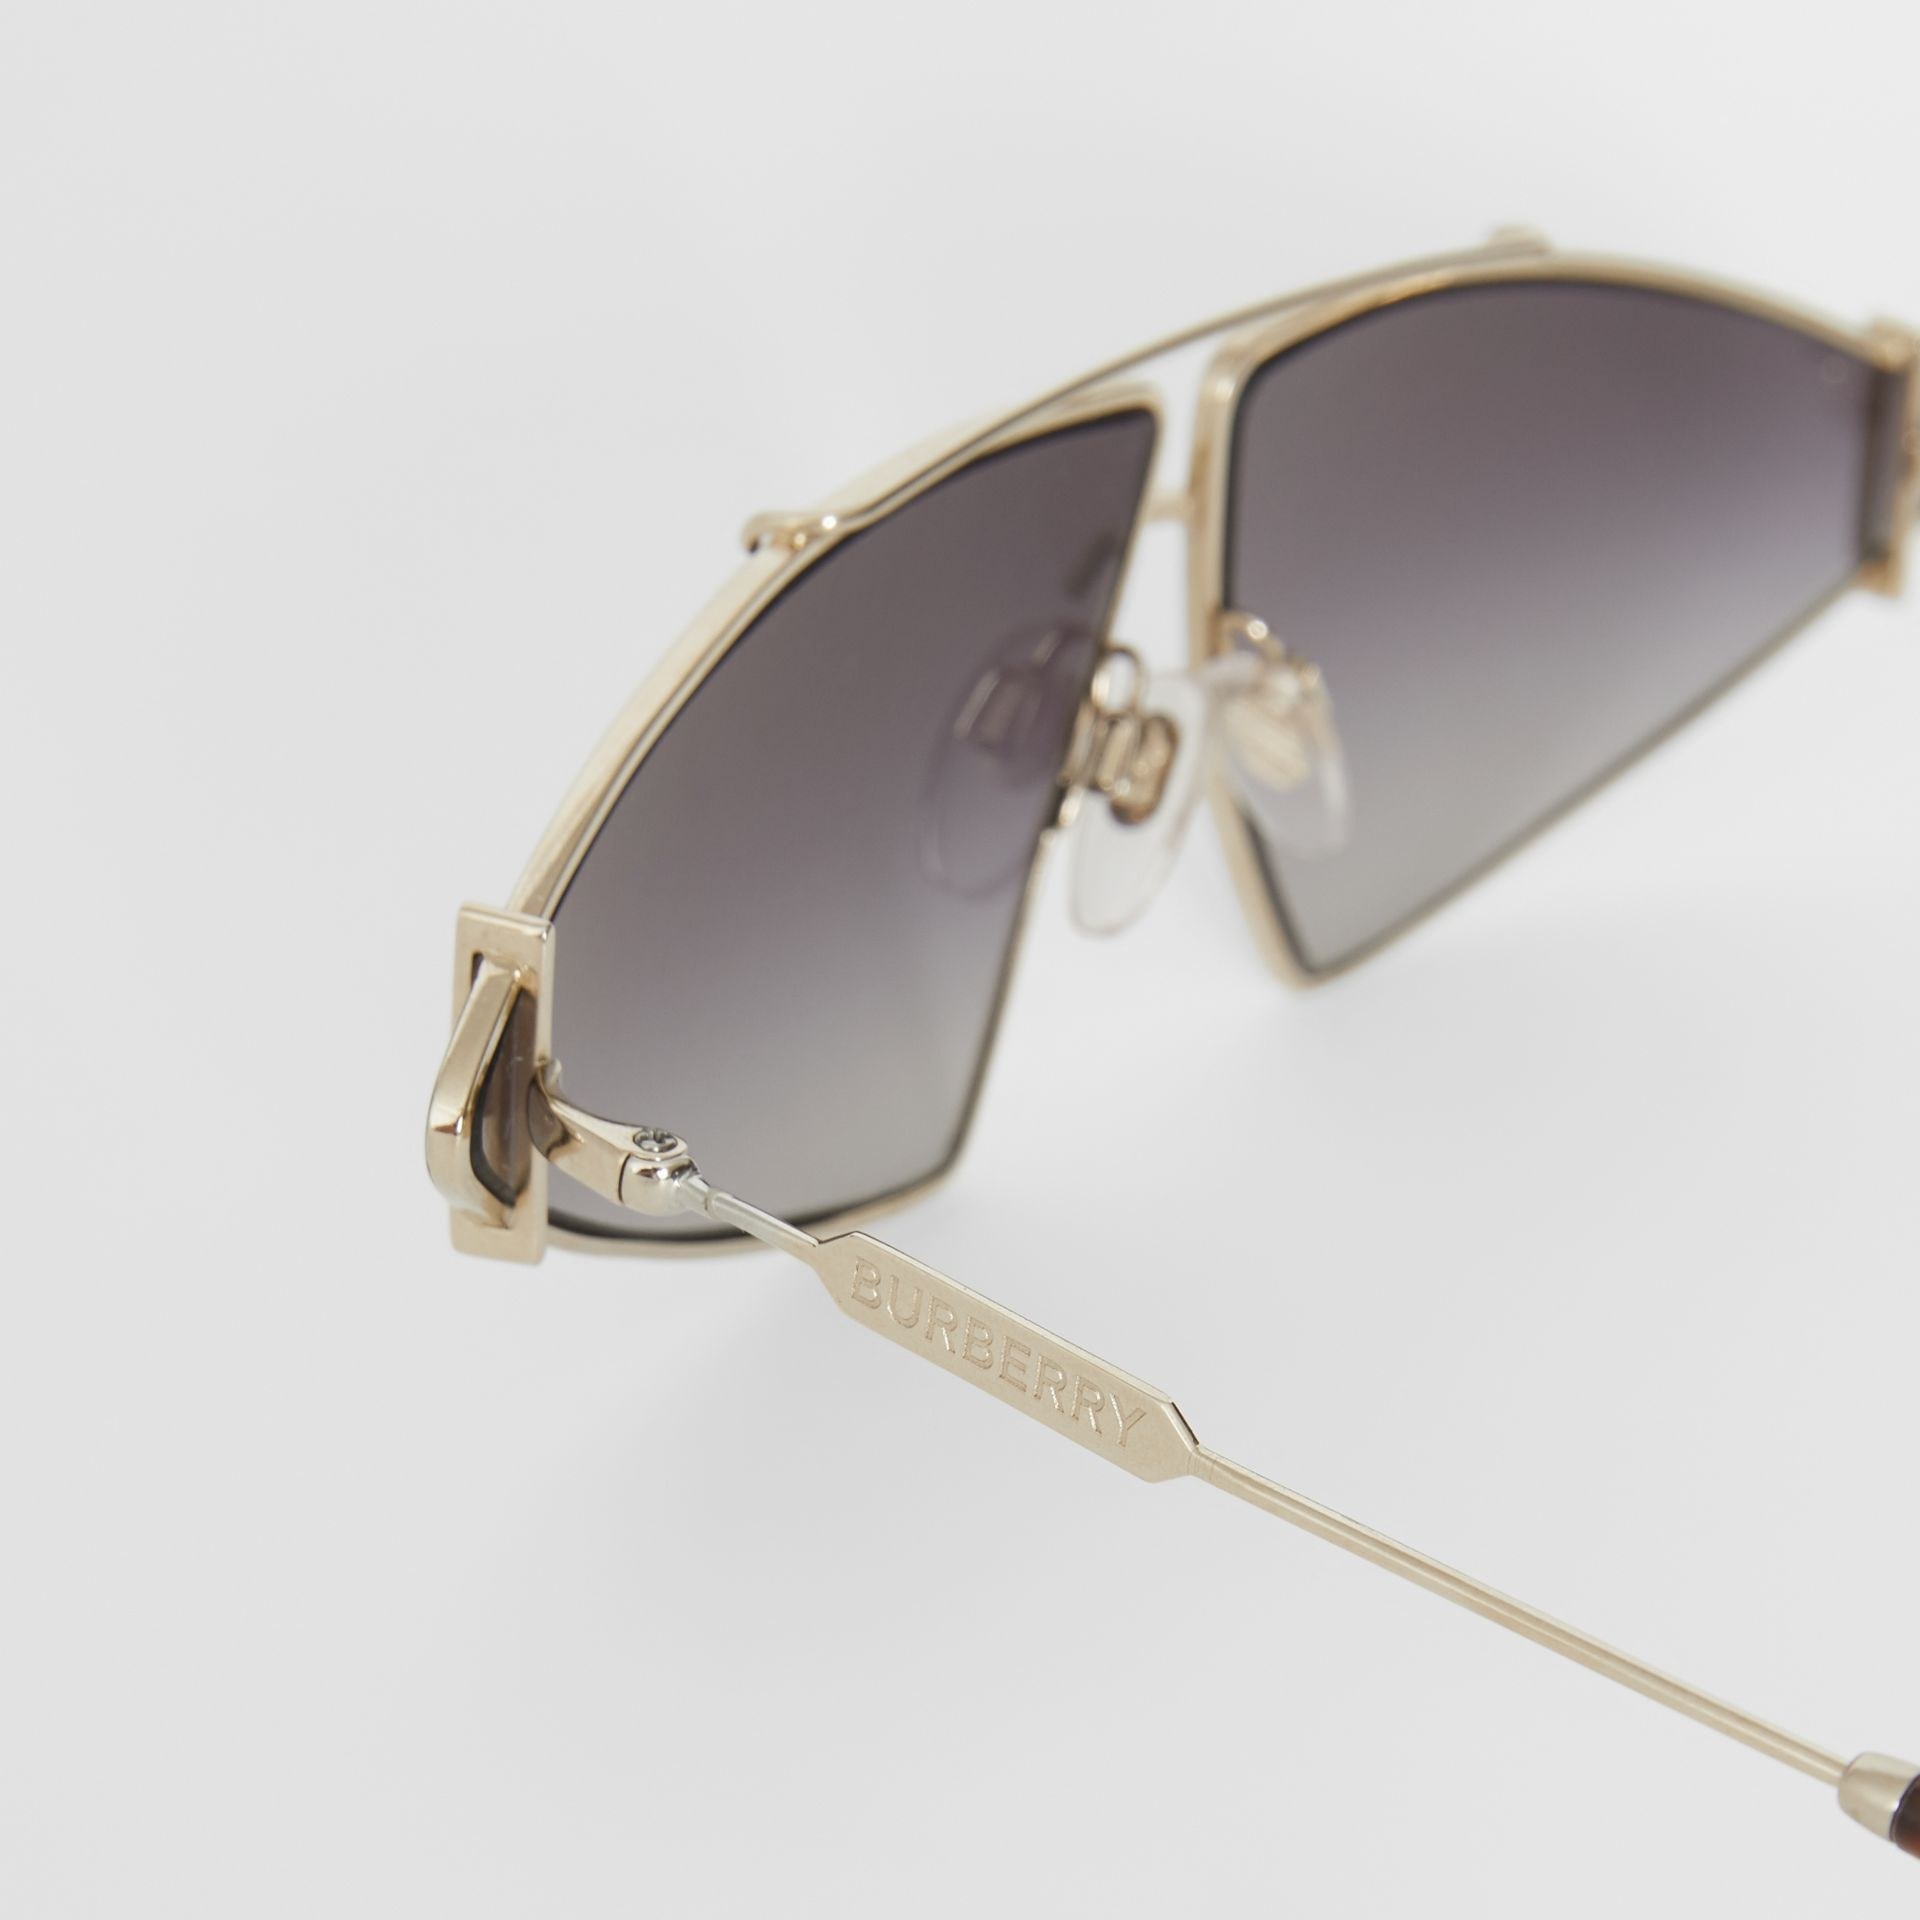 Gold-plated Triangular Frame Sunglasses in Black - Women | Burberry - gallery image 5